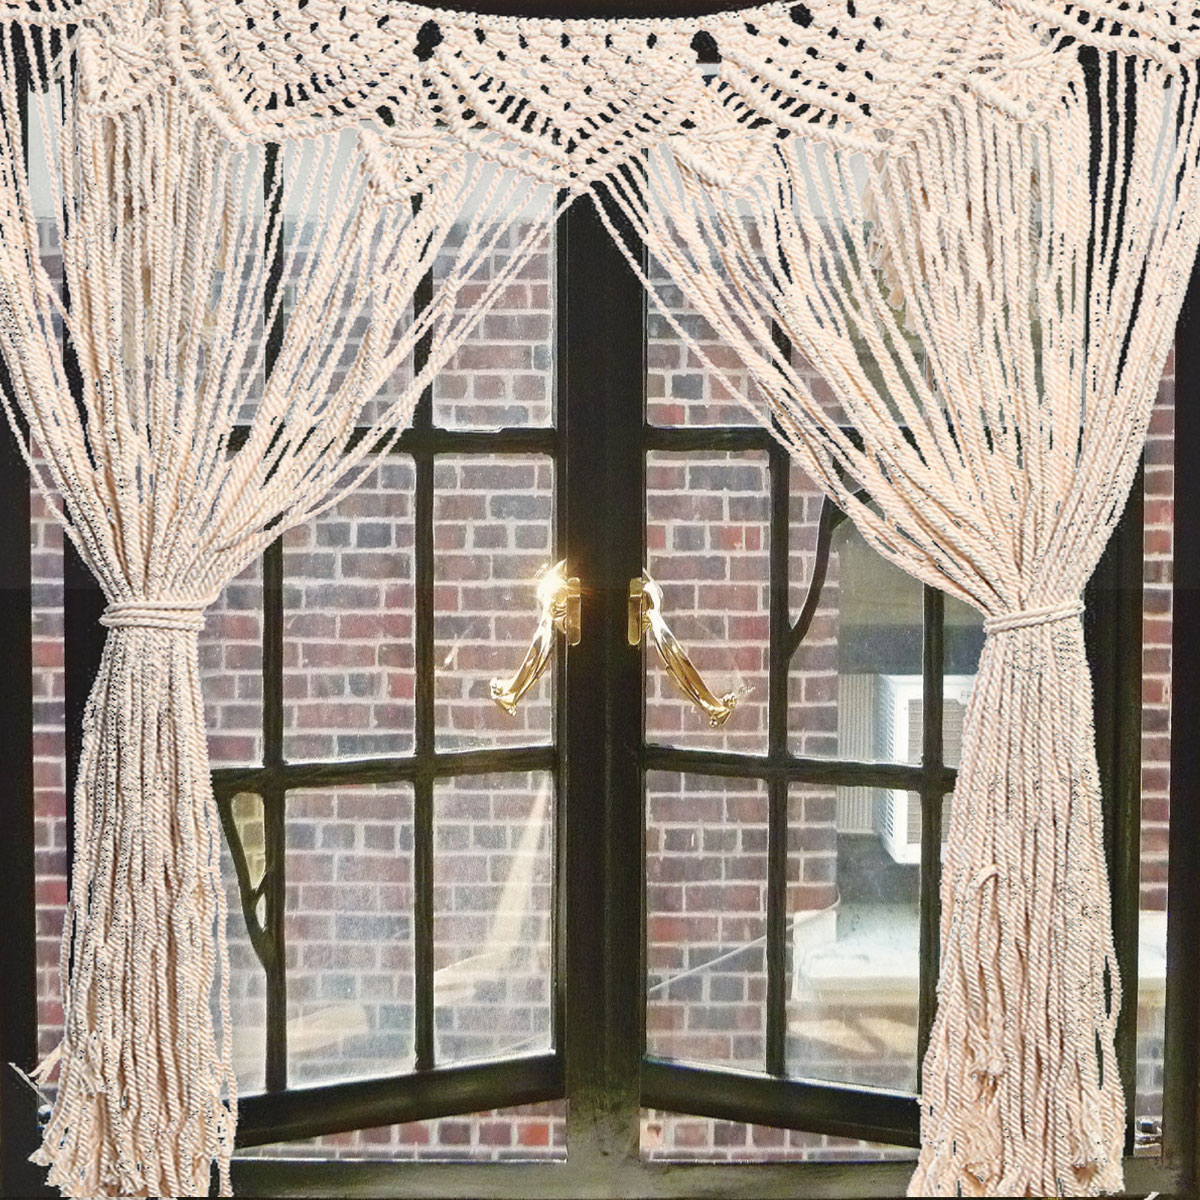 Bohemian Macrame Woven Tapestry Wall Hanging Handmade Cotton Rope Home Decor Window Curtain Wedding Backdrop by